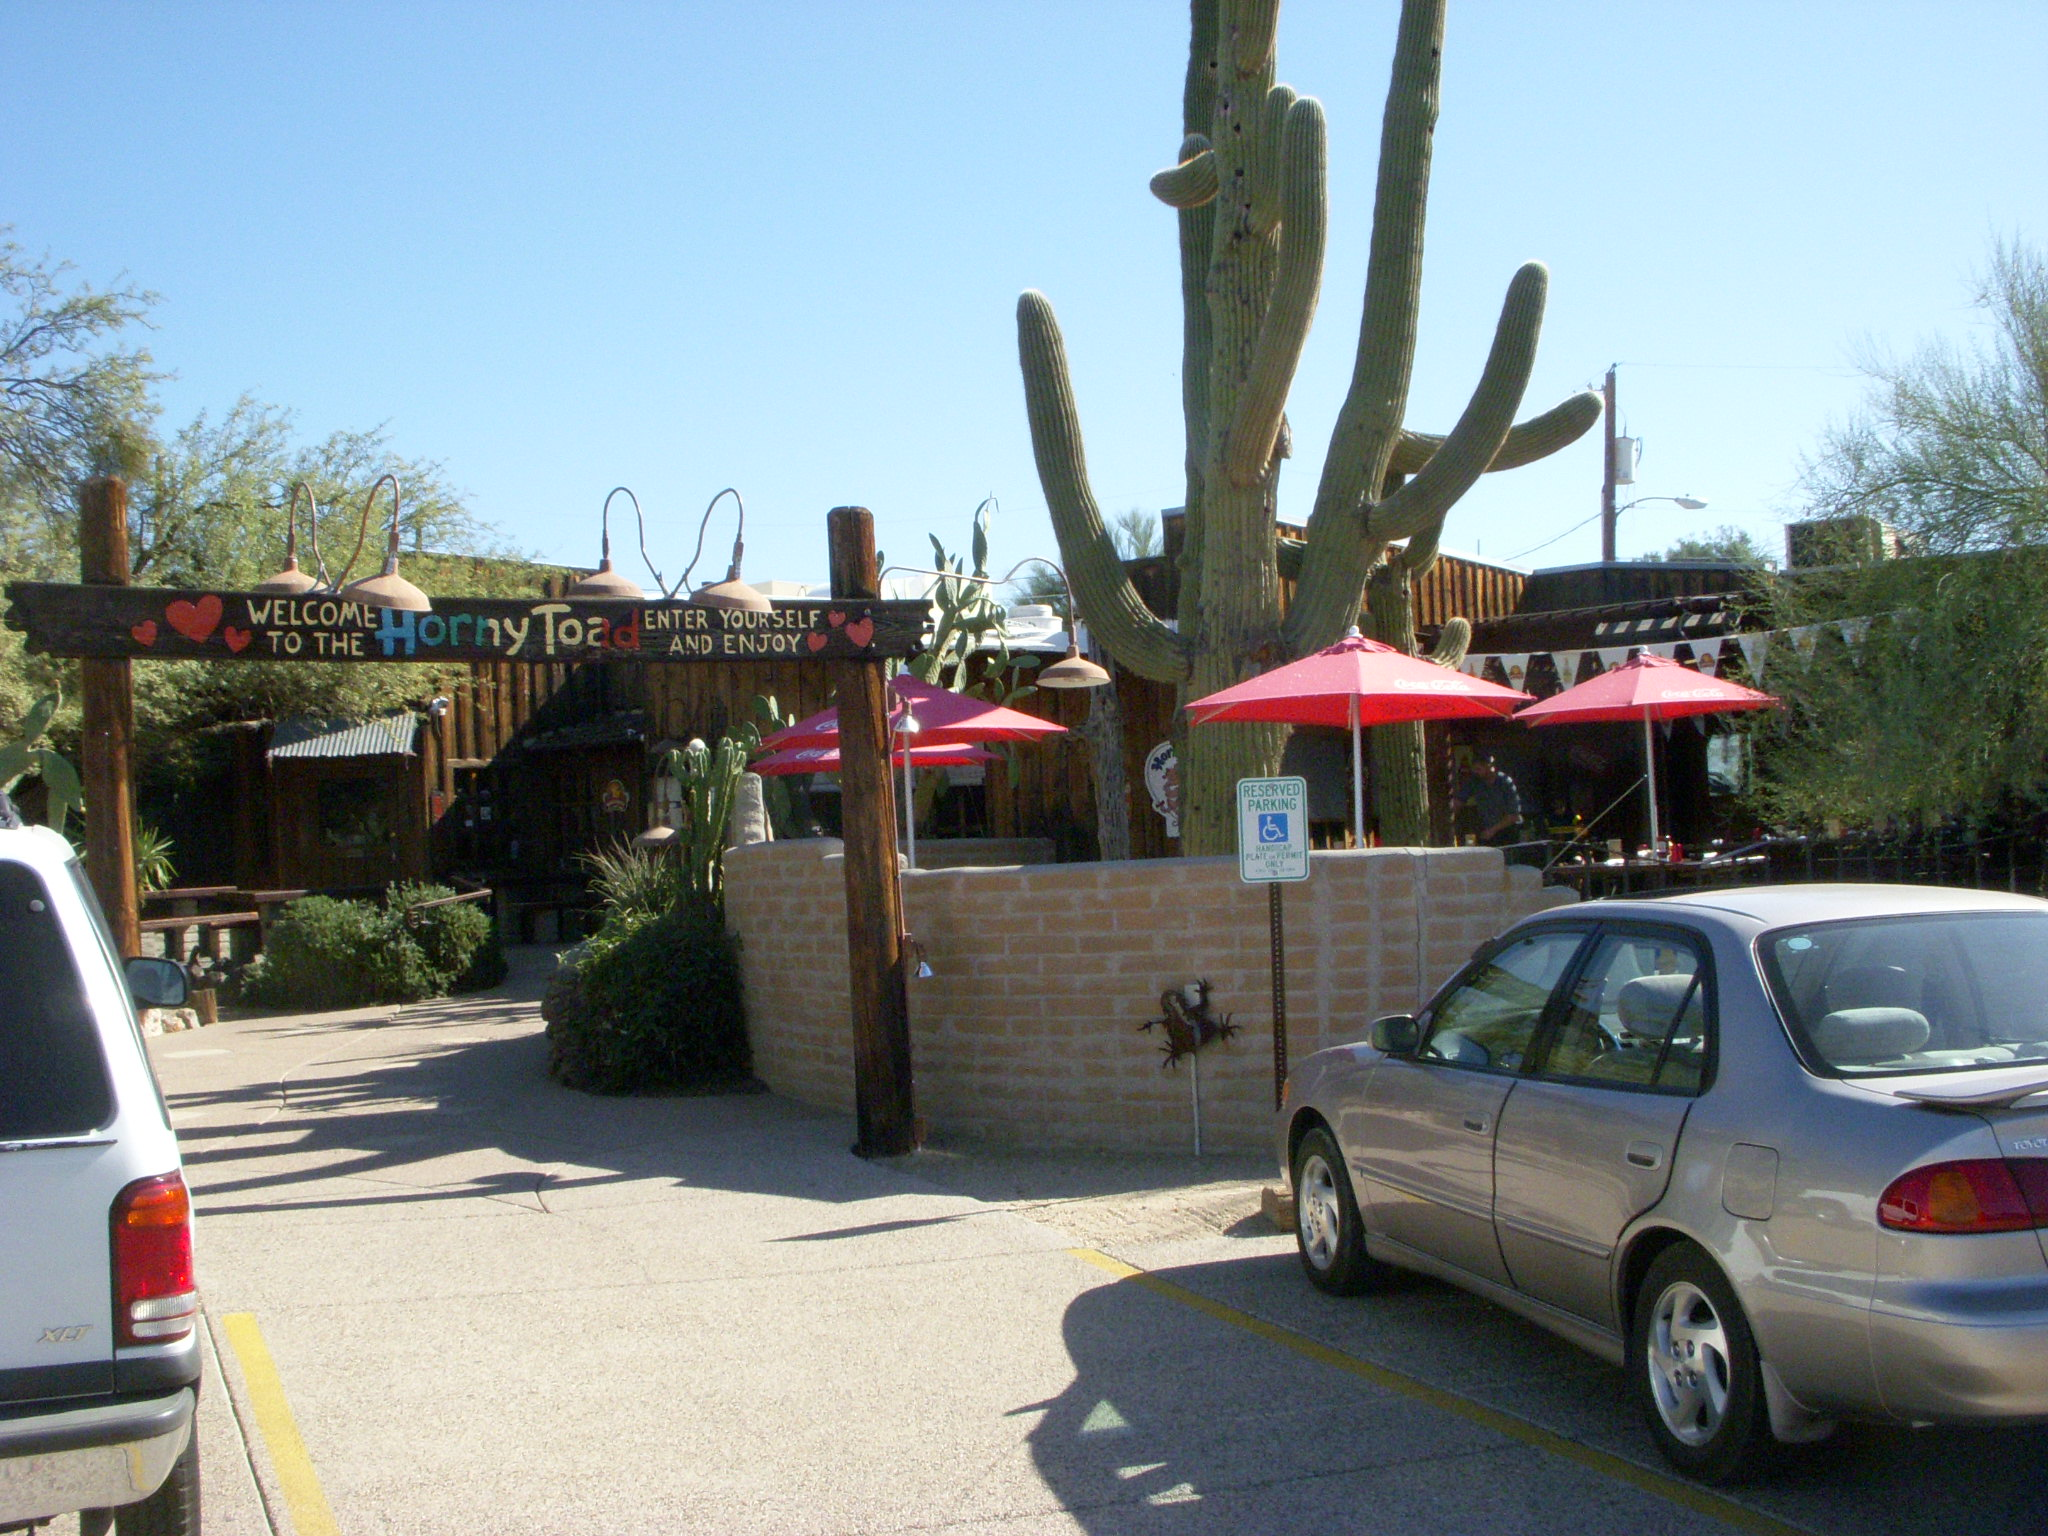 A view of the Horny Toad's patio and parking lot with a large saguaro on the property.